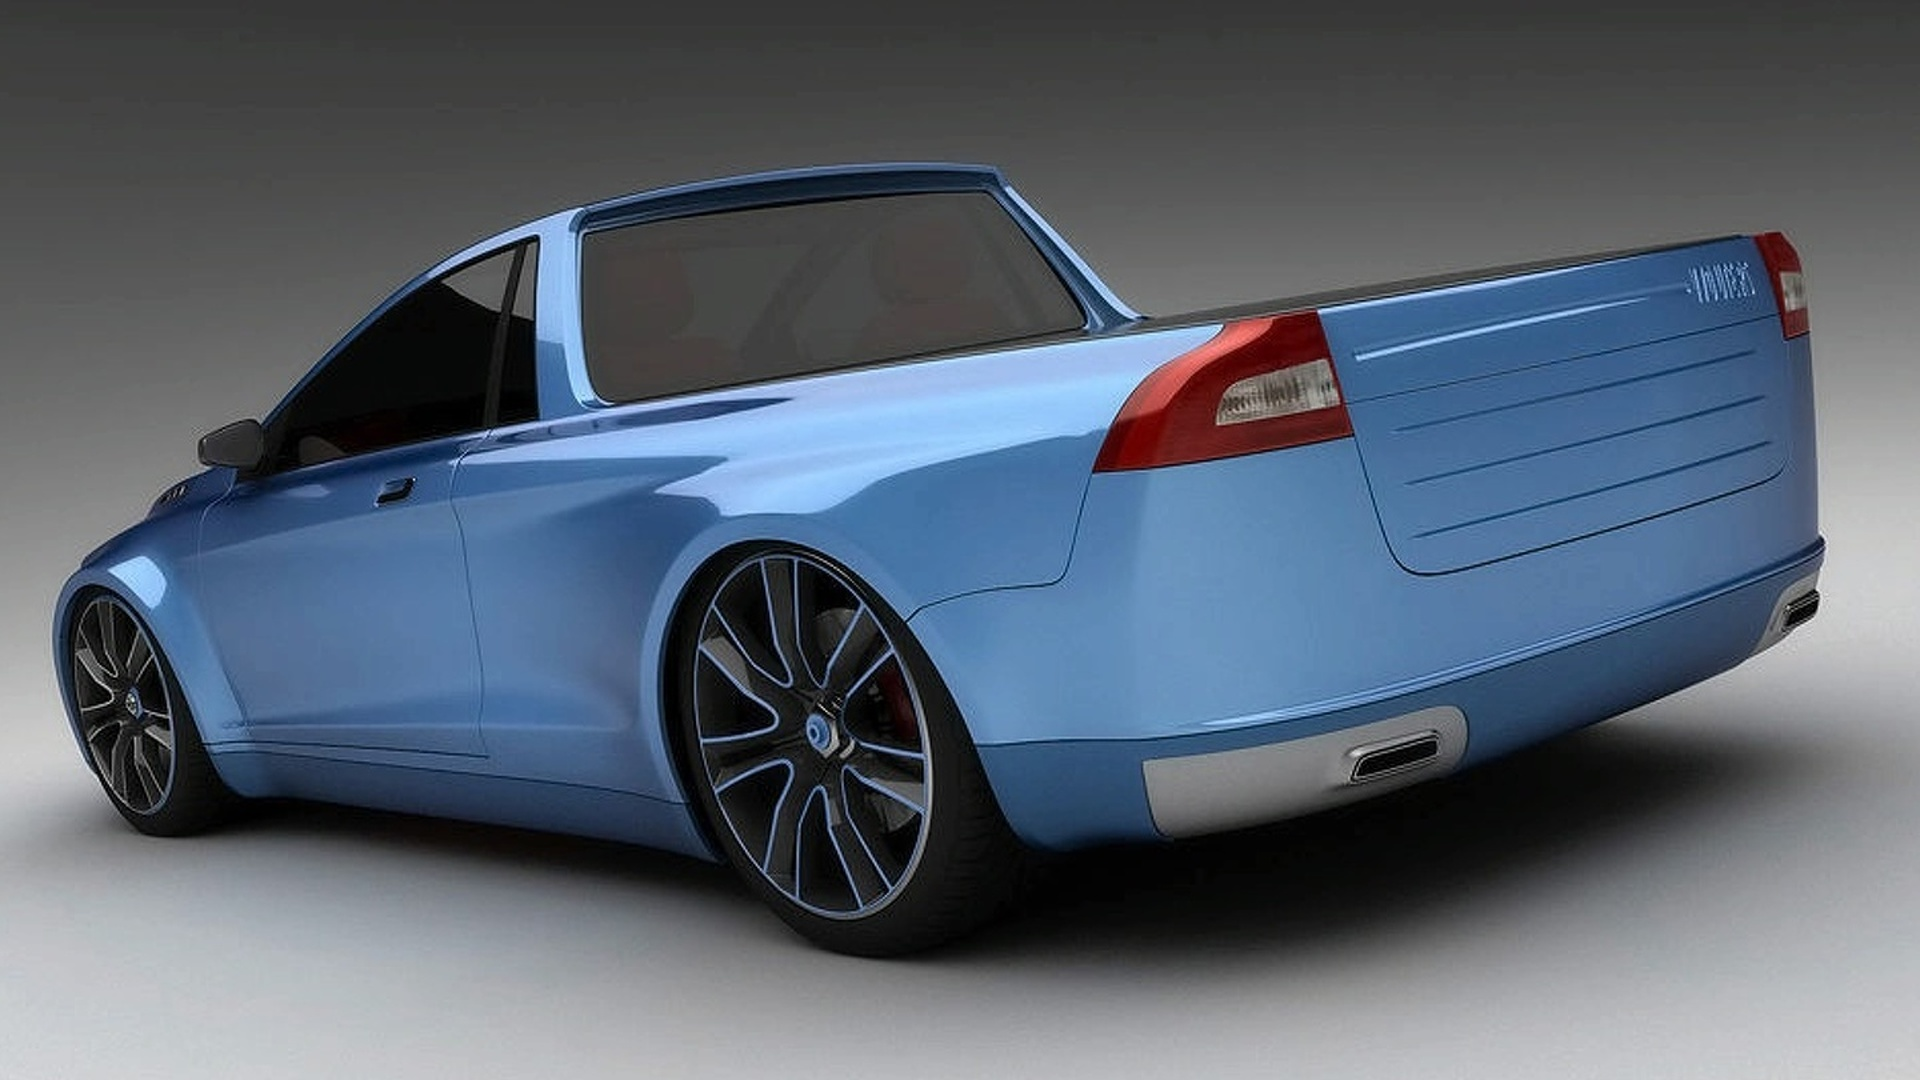 3D Rendered: Volvo V70 pickup aka Volvomino